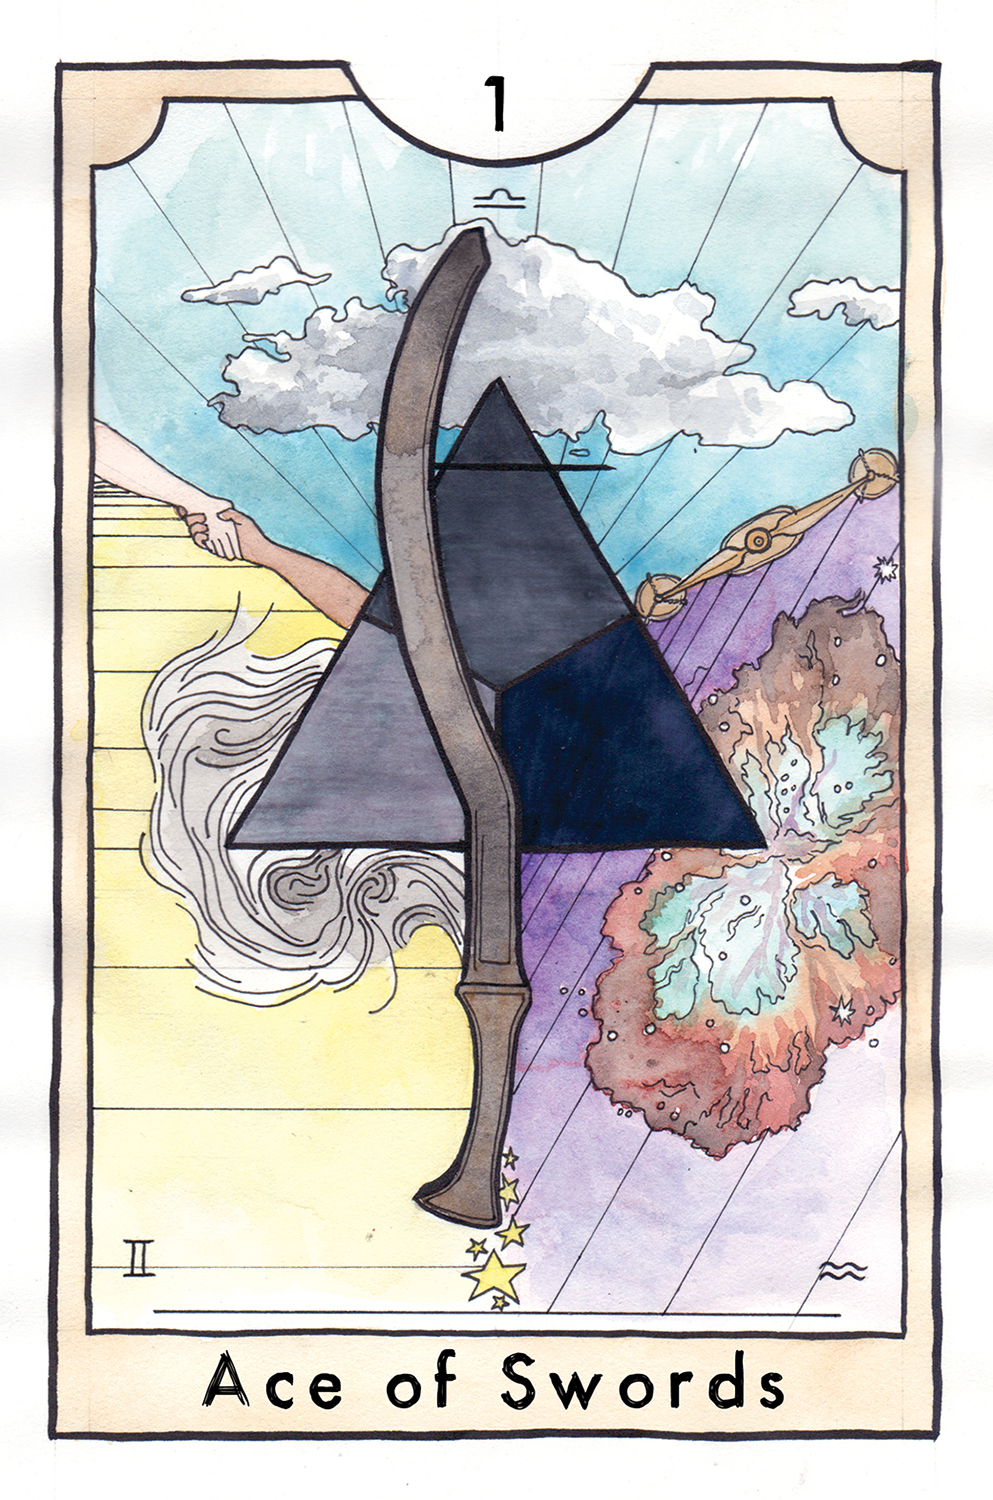 The Ace of Swords from The New Chapter Tarot by Kathryn Briggs